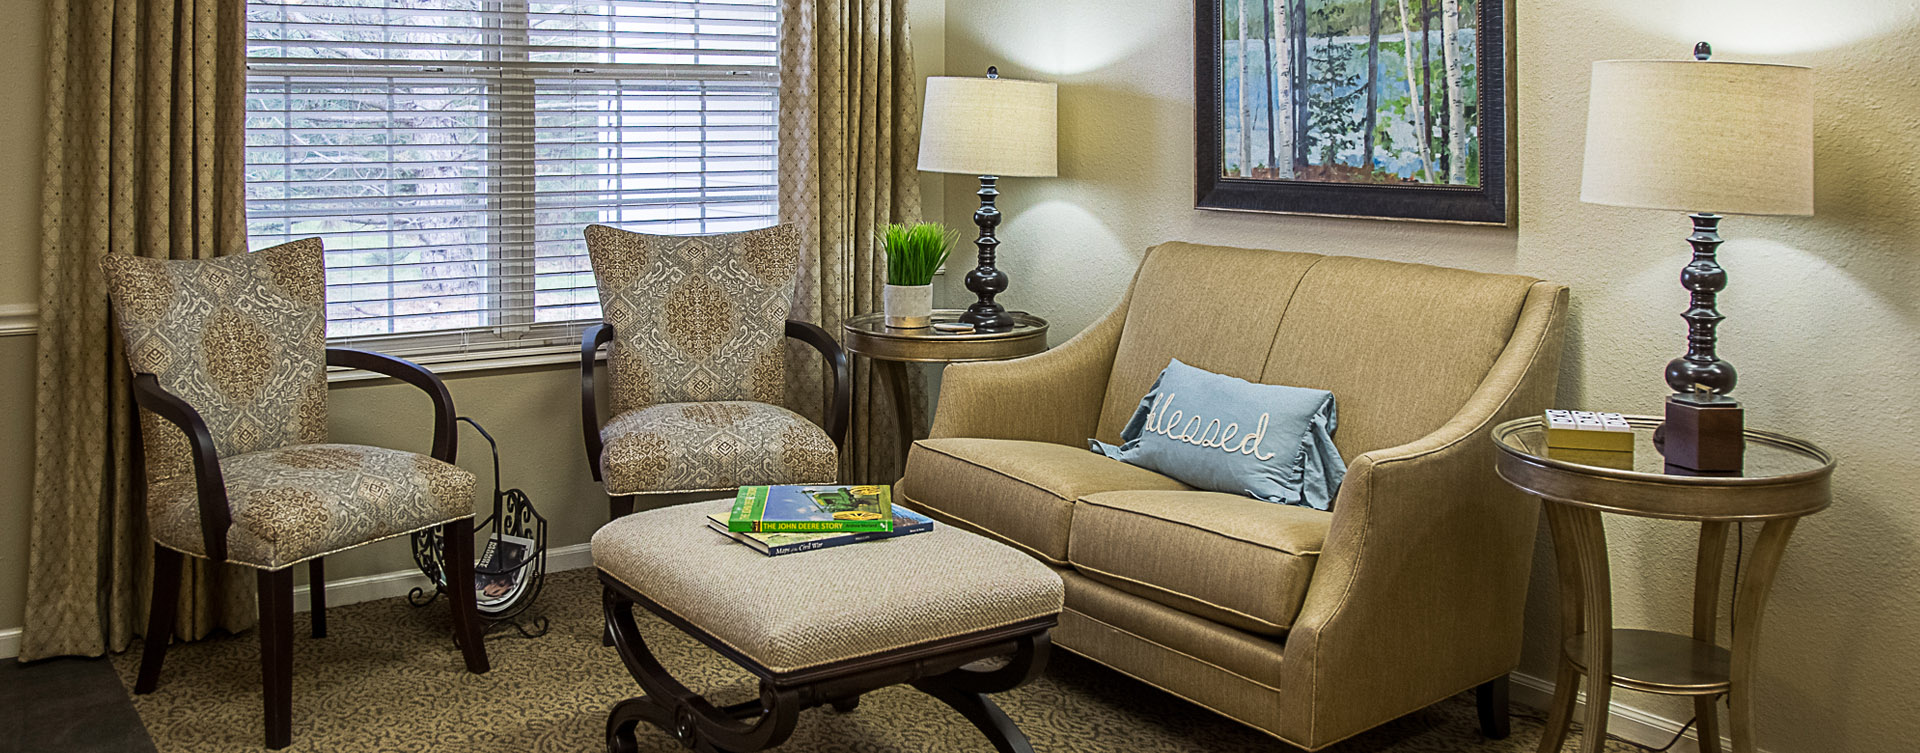 Enjoy a good snooze in the sitting area at Bickford of Davenport